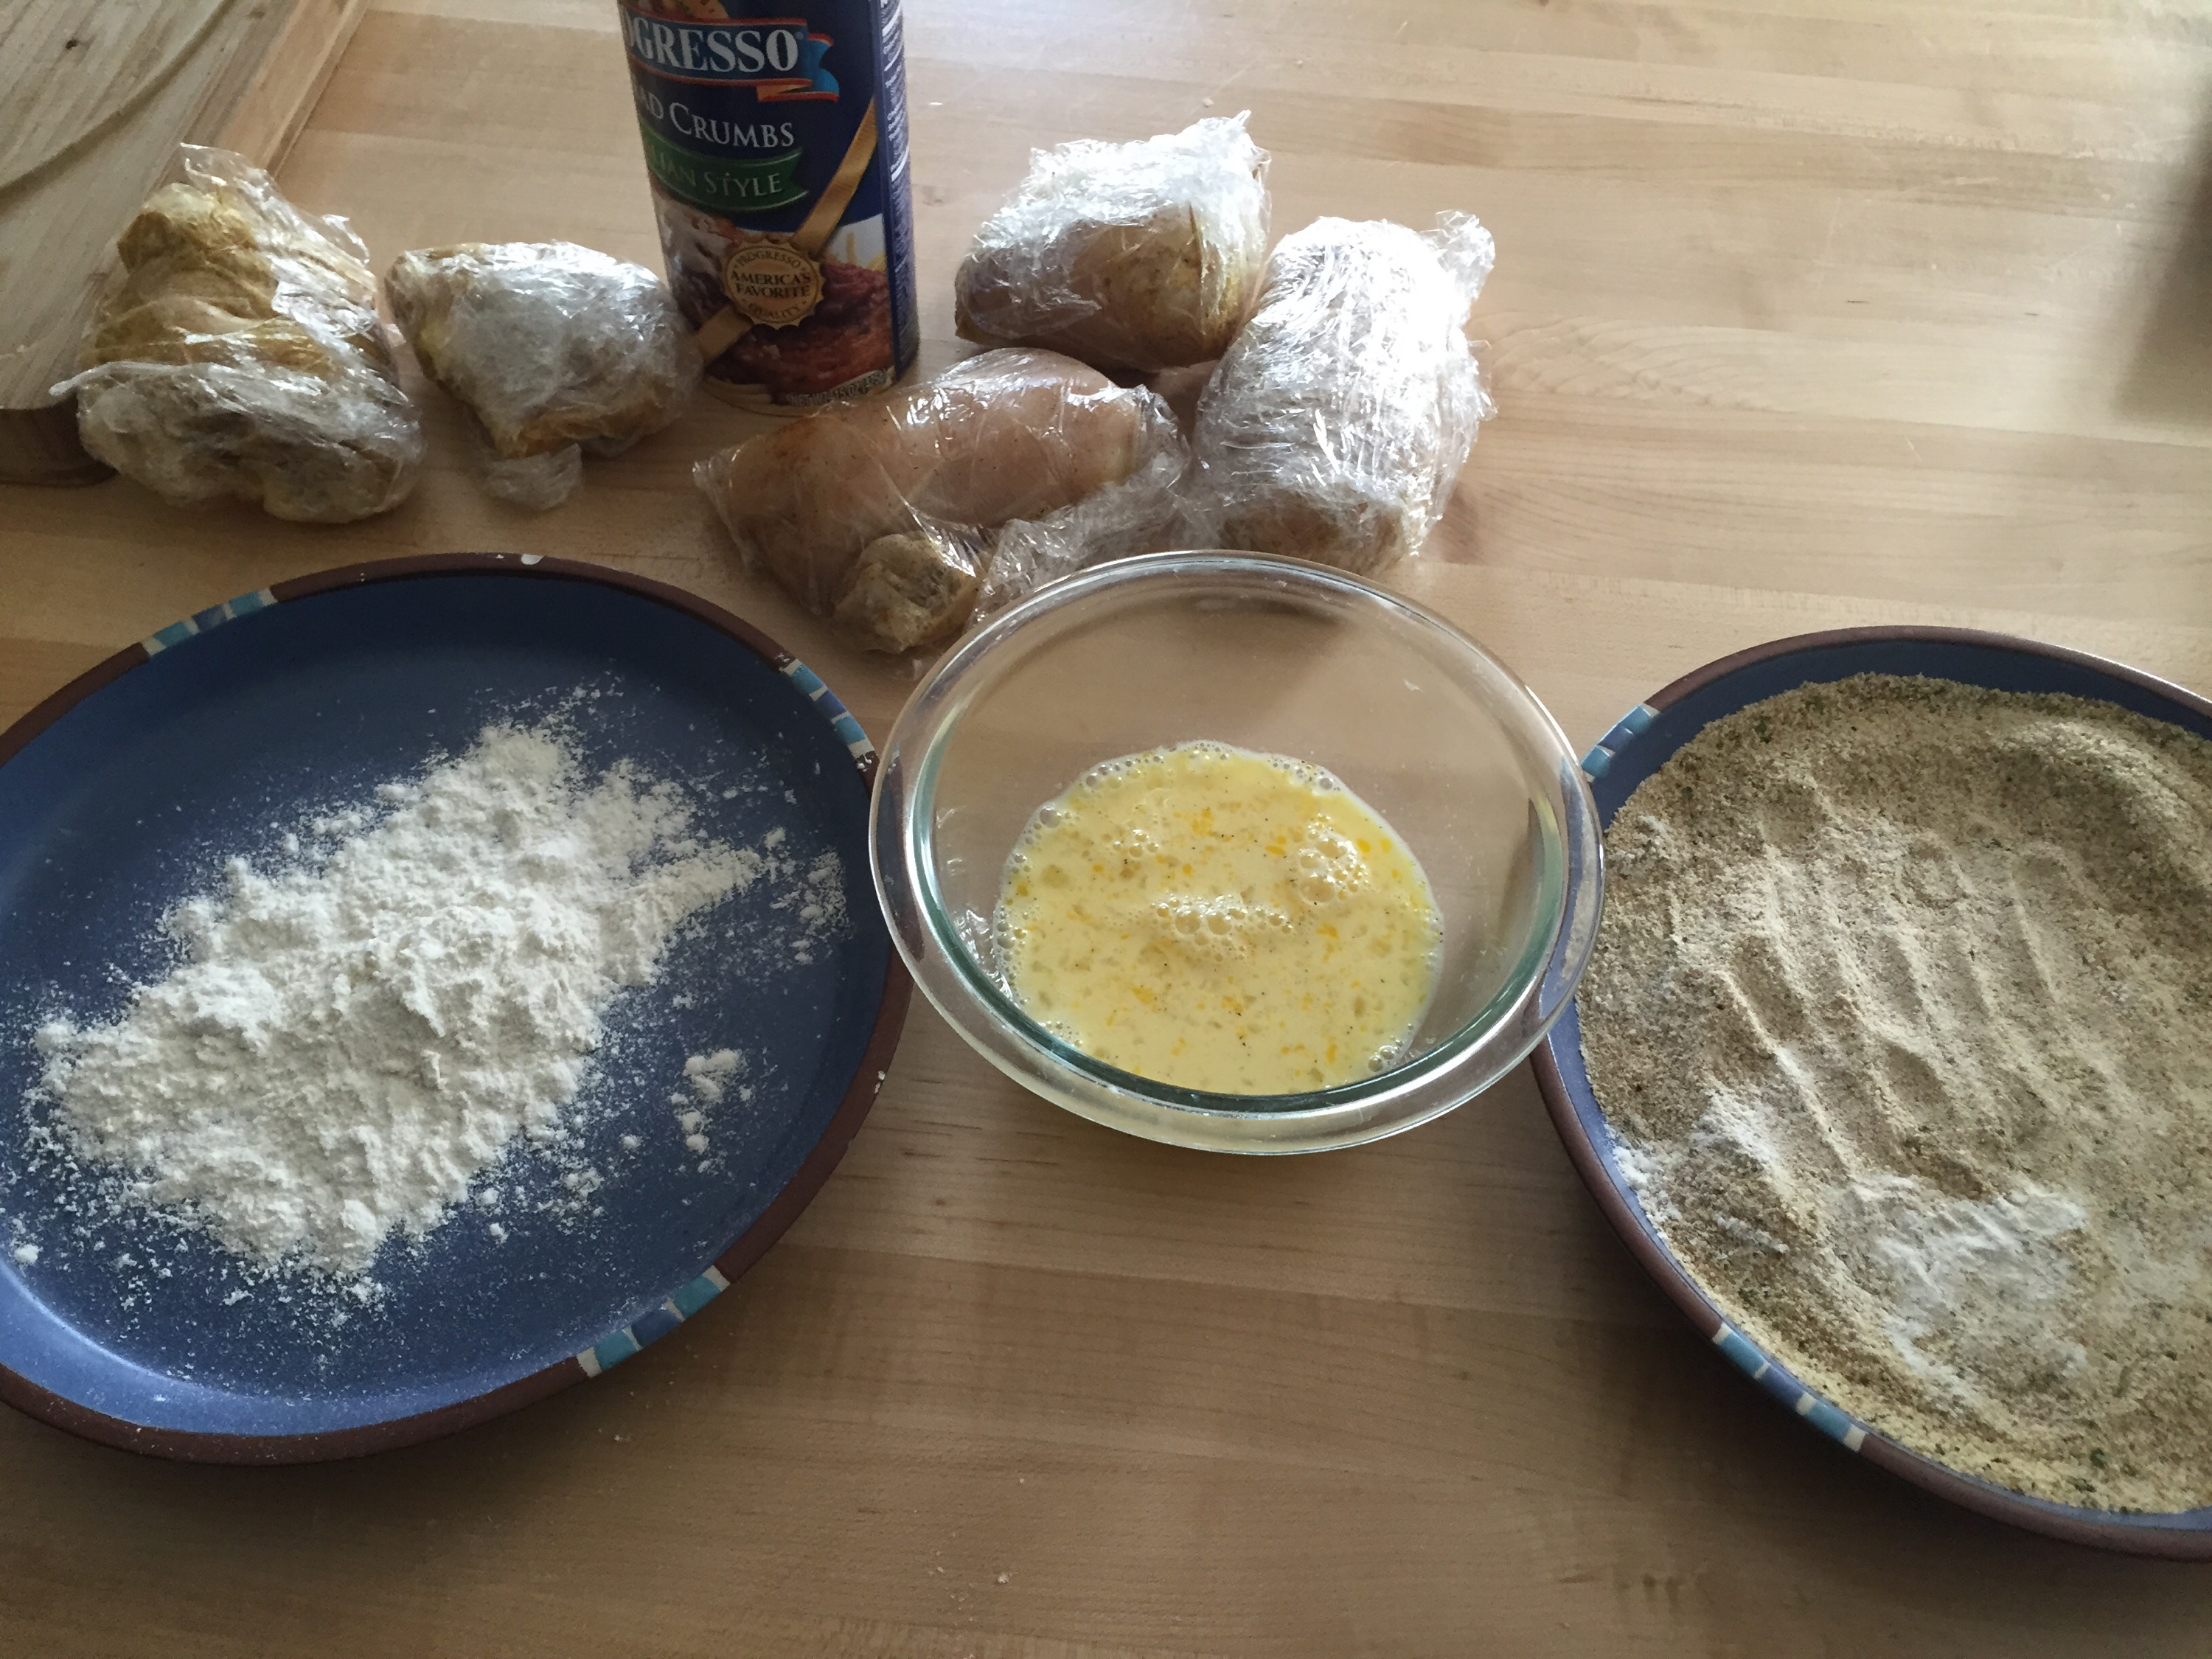 Flour-eggs-bread crumbs and repeat